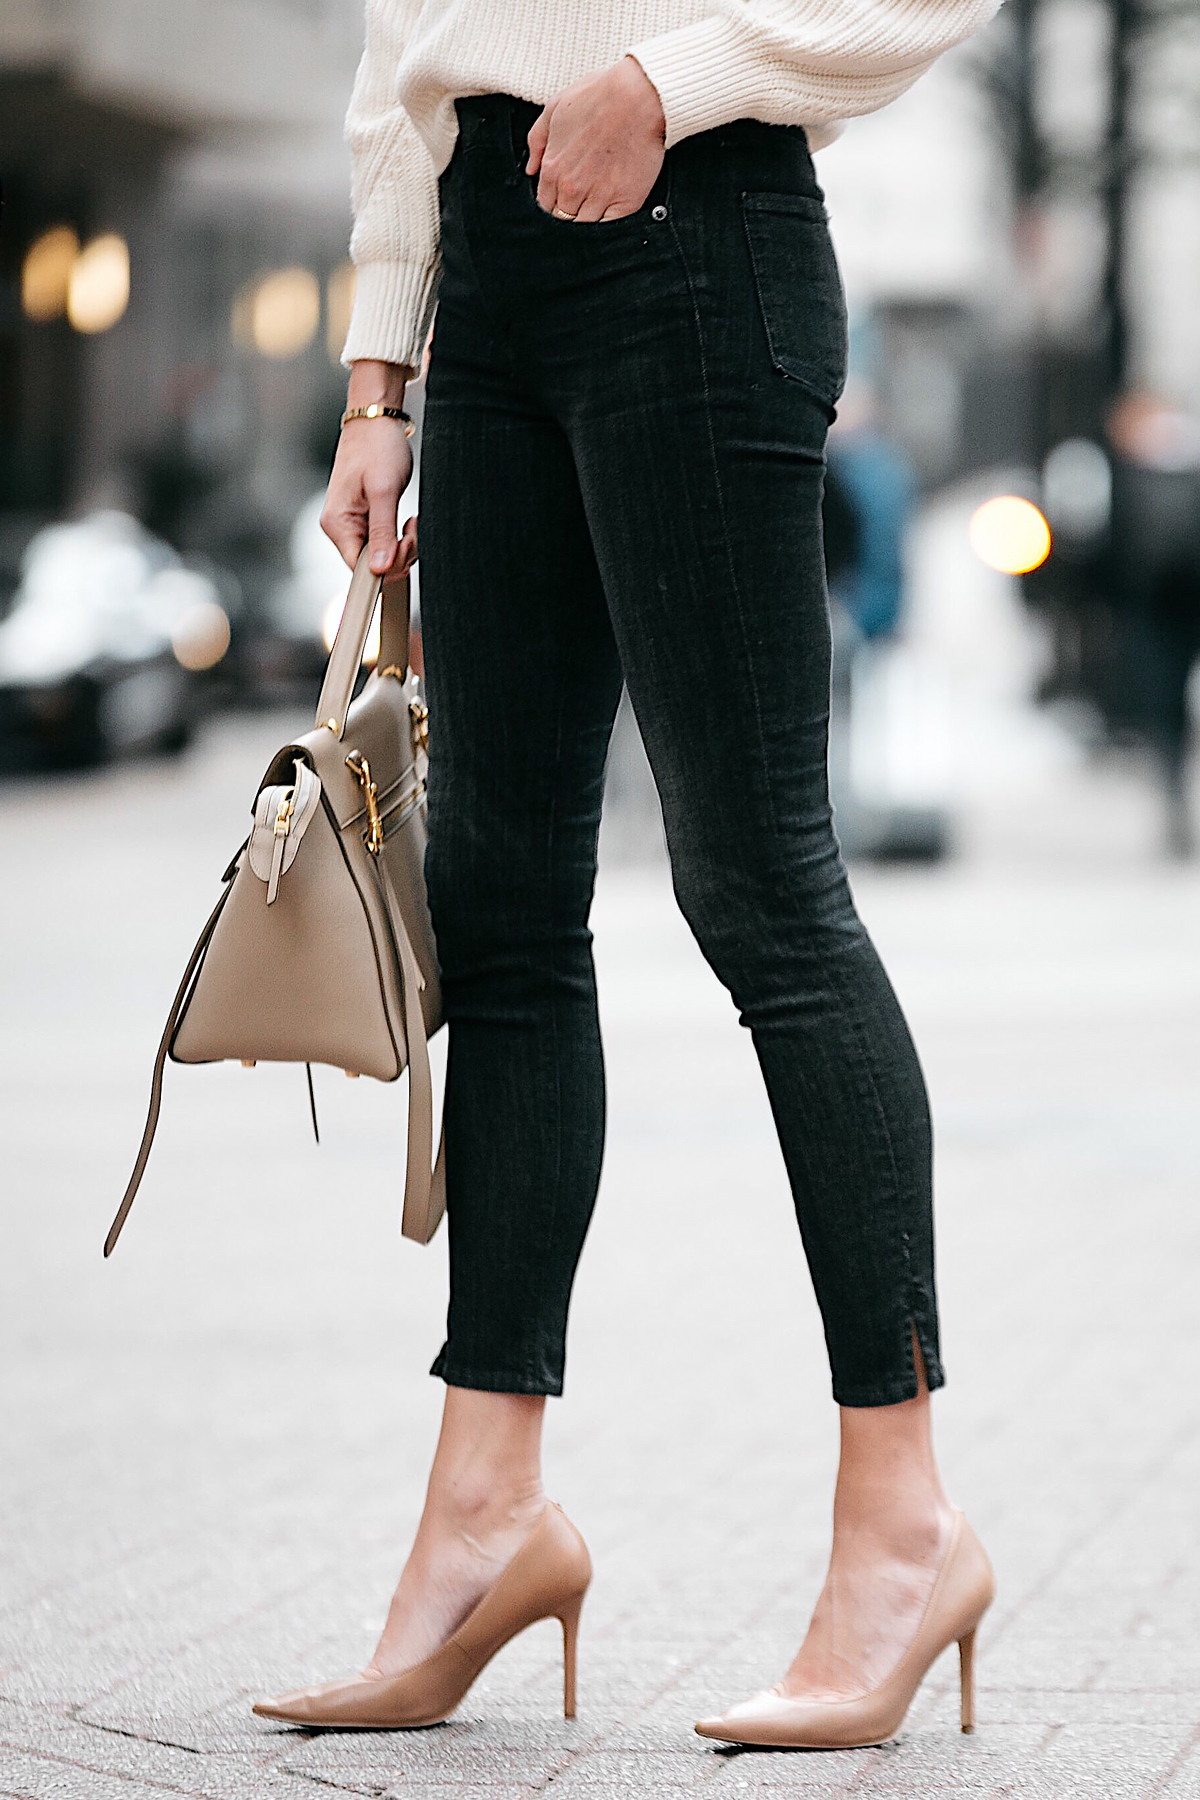 Woman Wearing Rag and Bone Black Skinny Jeans Nude Pumps Fashion Jackson Dallas Blogger Fashion Blogger Street Style